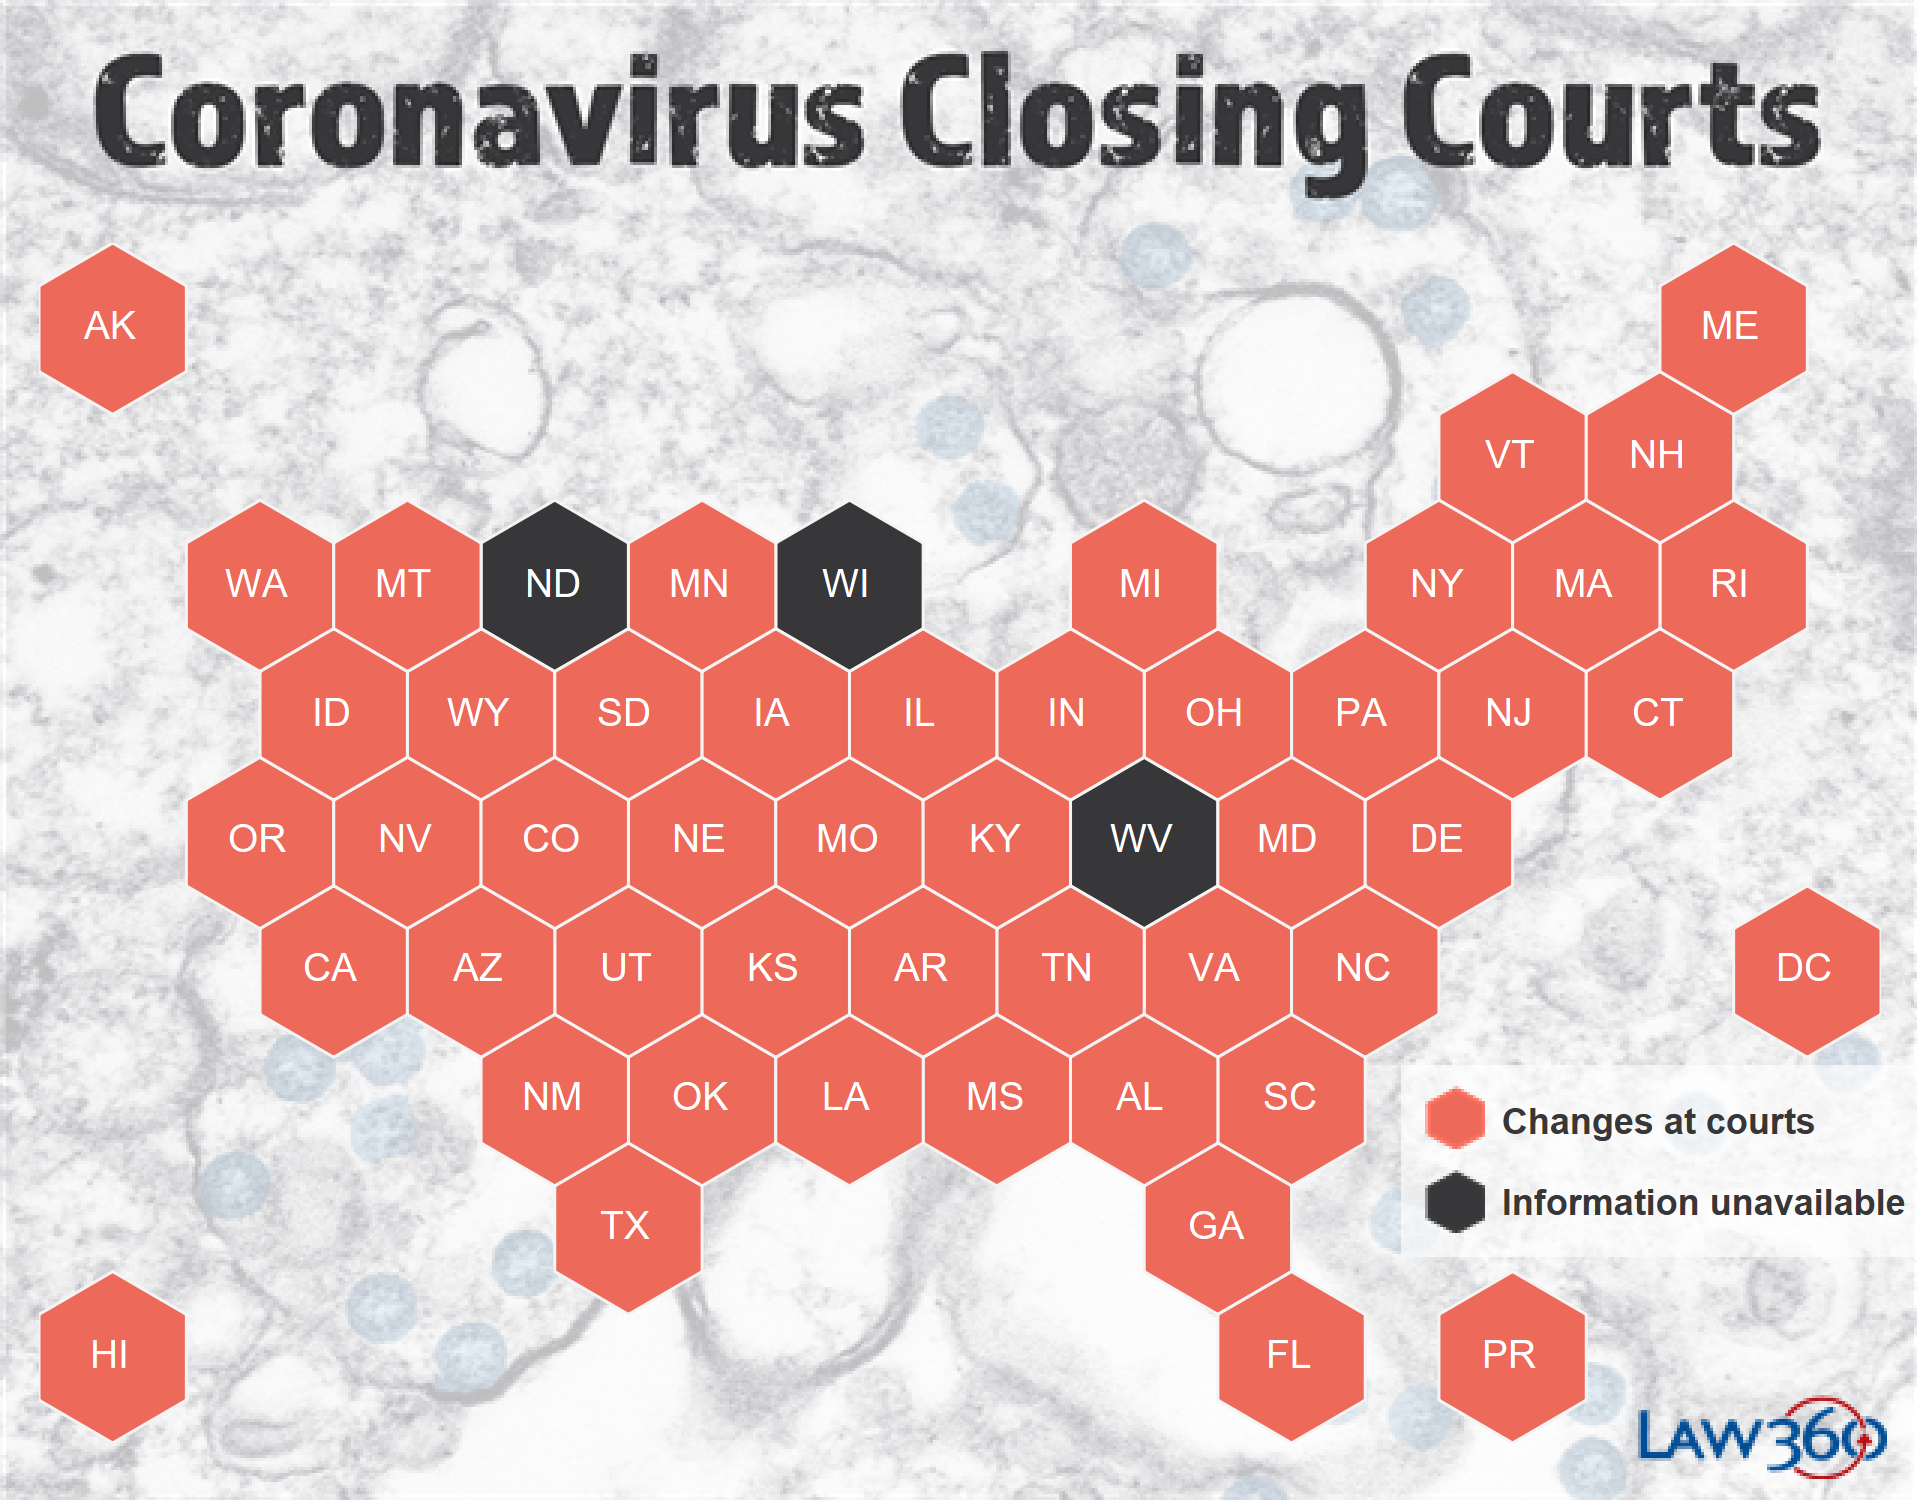 Coronavirus: The Latest Court Closures And Restrictions - Law360 Regarding Lane County Trial Calendar